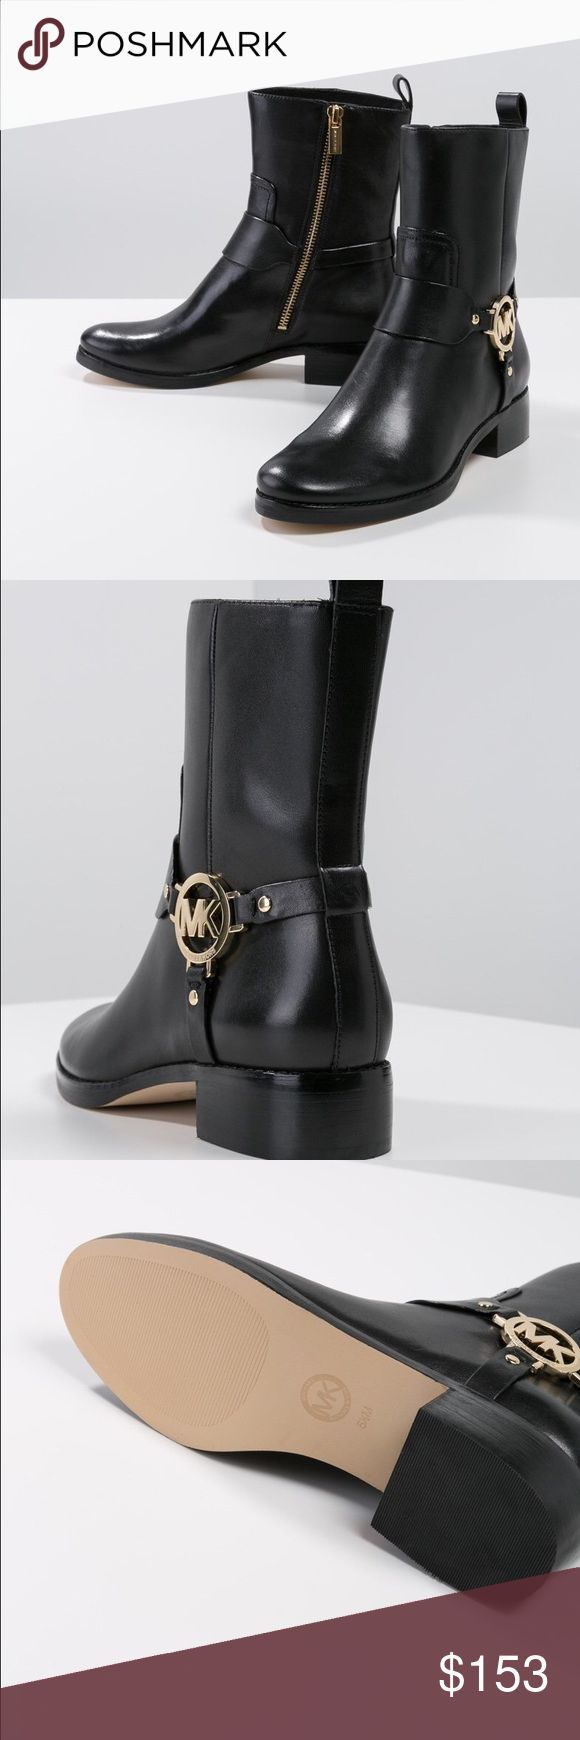 Buy michael kors wyatt ankle boots > OFF78% Discounted